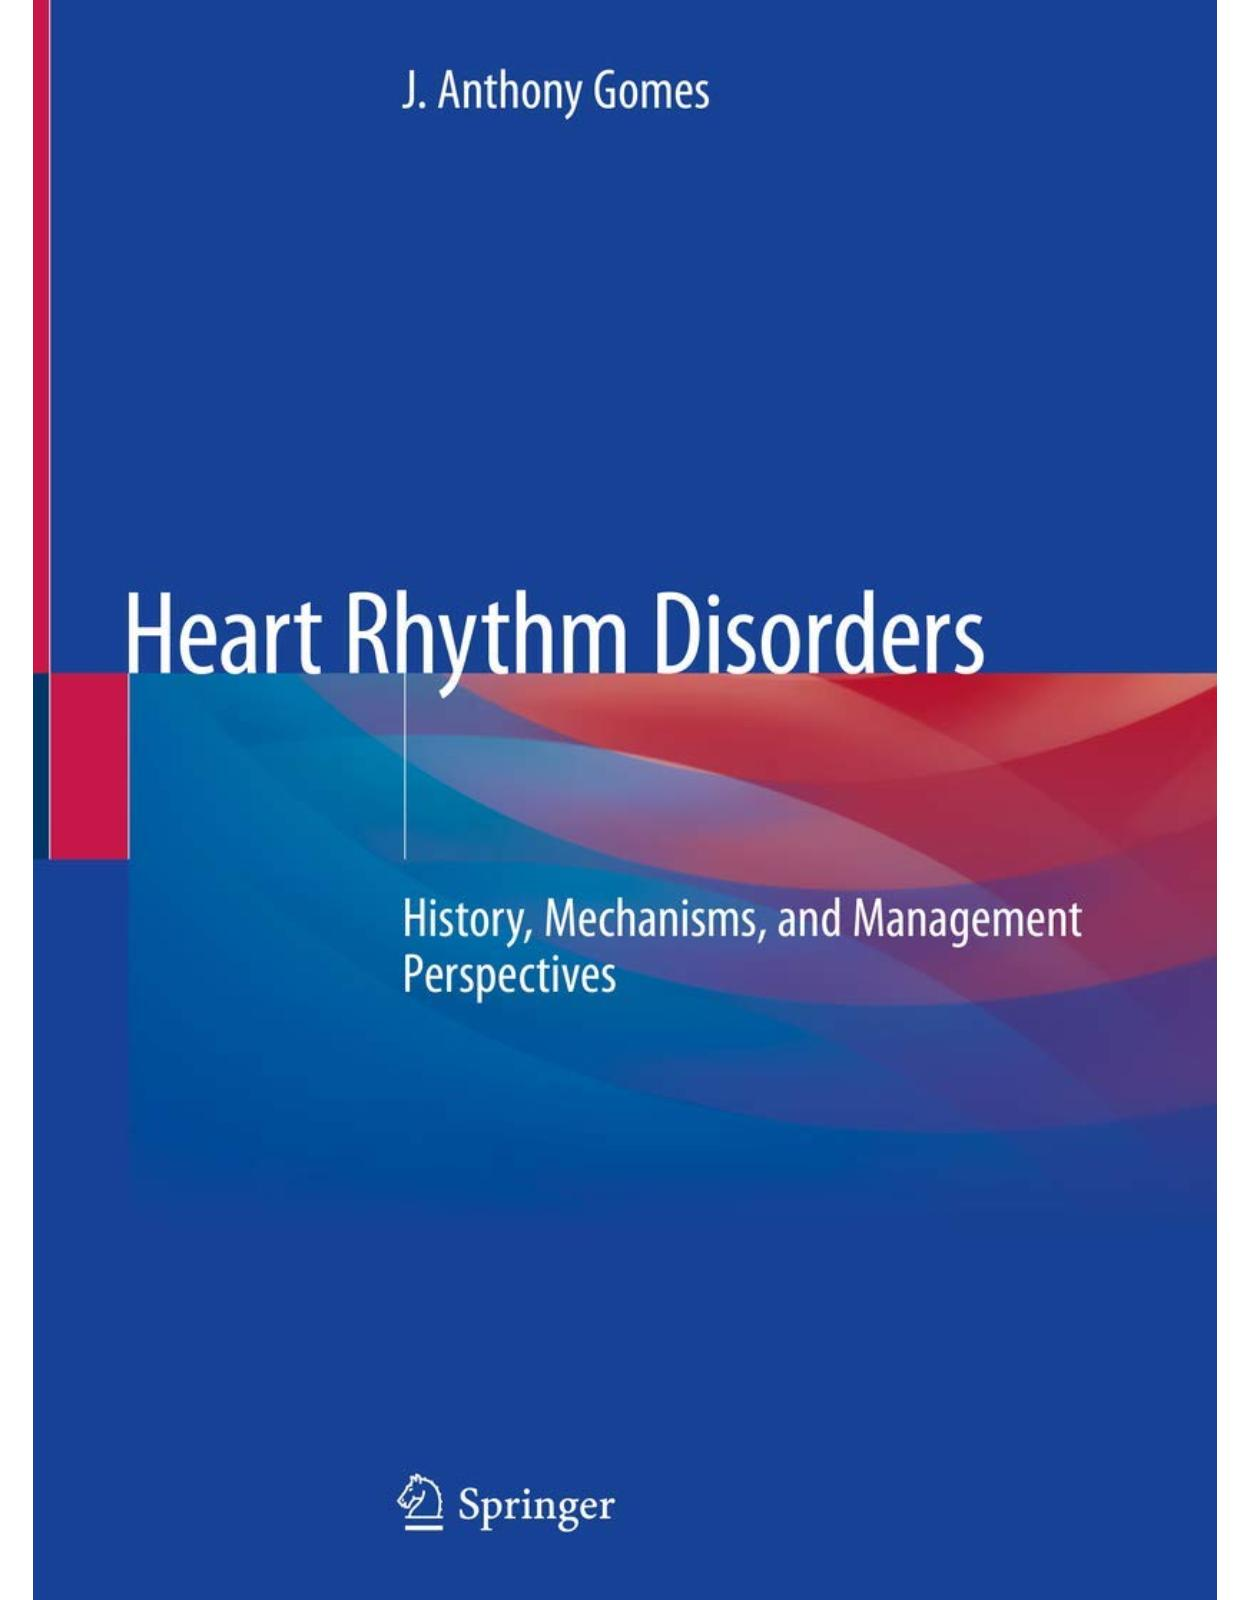 Heart Rhythm Disorders: History, Mechanisms, and Management Perspectives